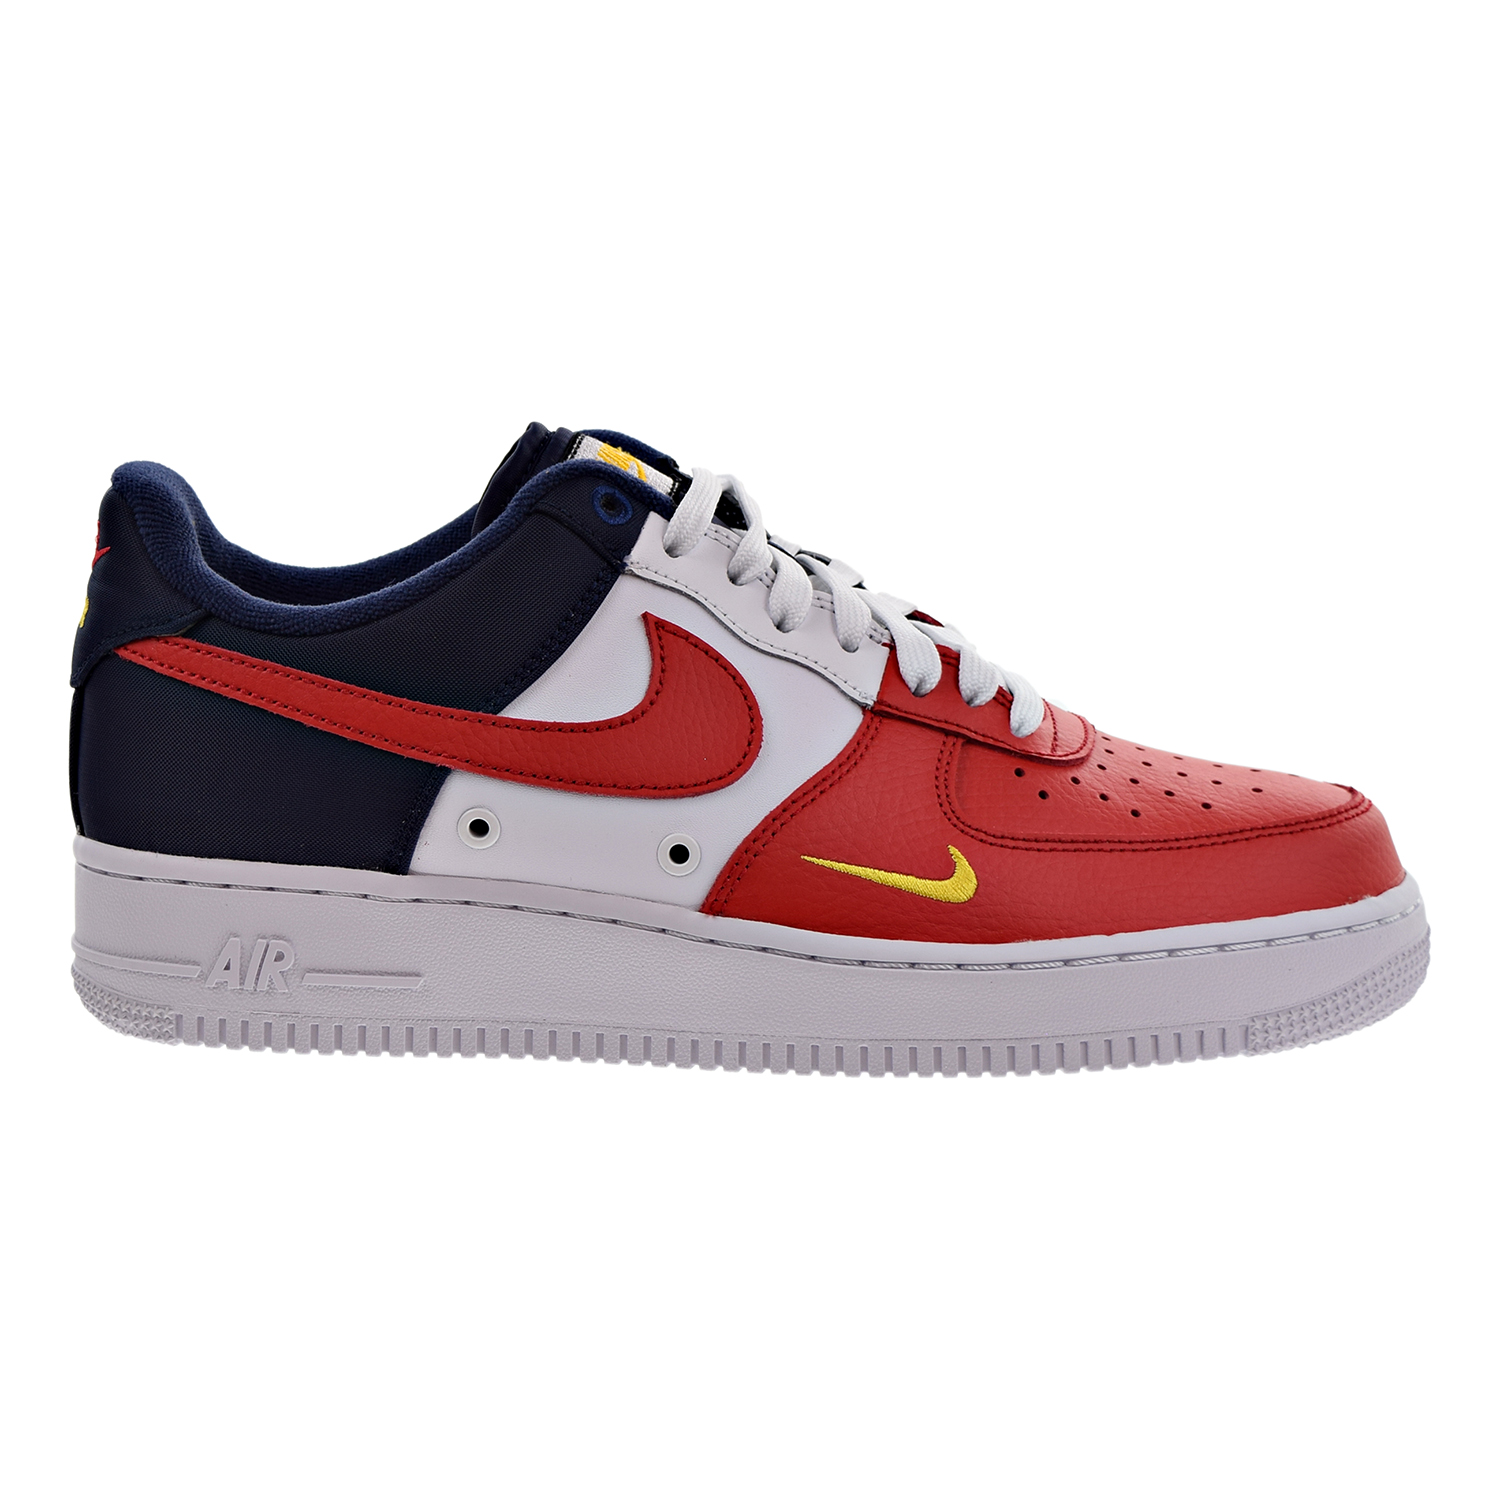 Nike Air Force 1 07 LV8 Men's Shoes University Red/Univer...